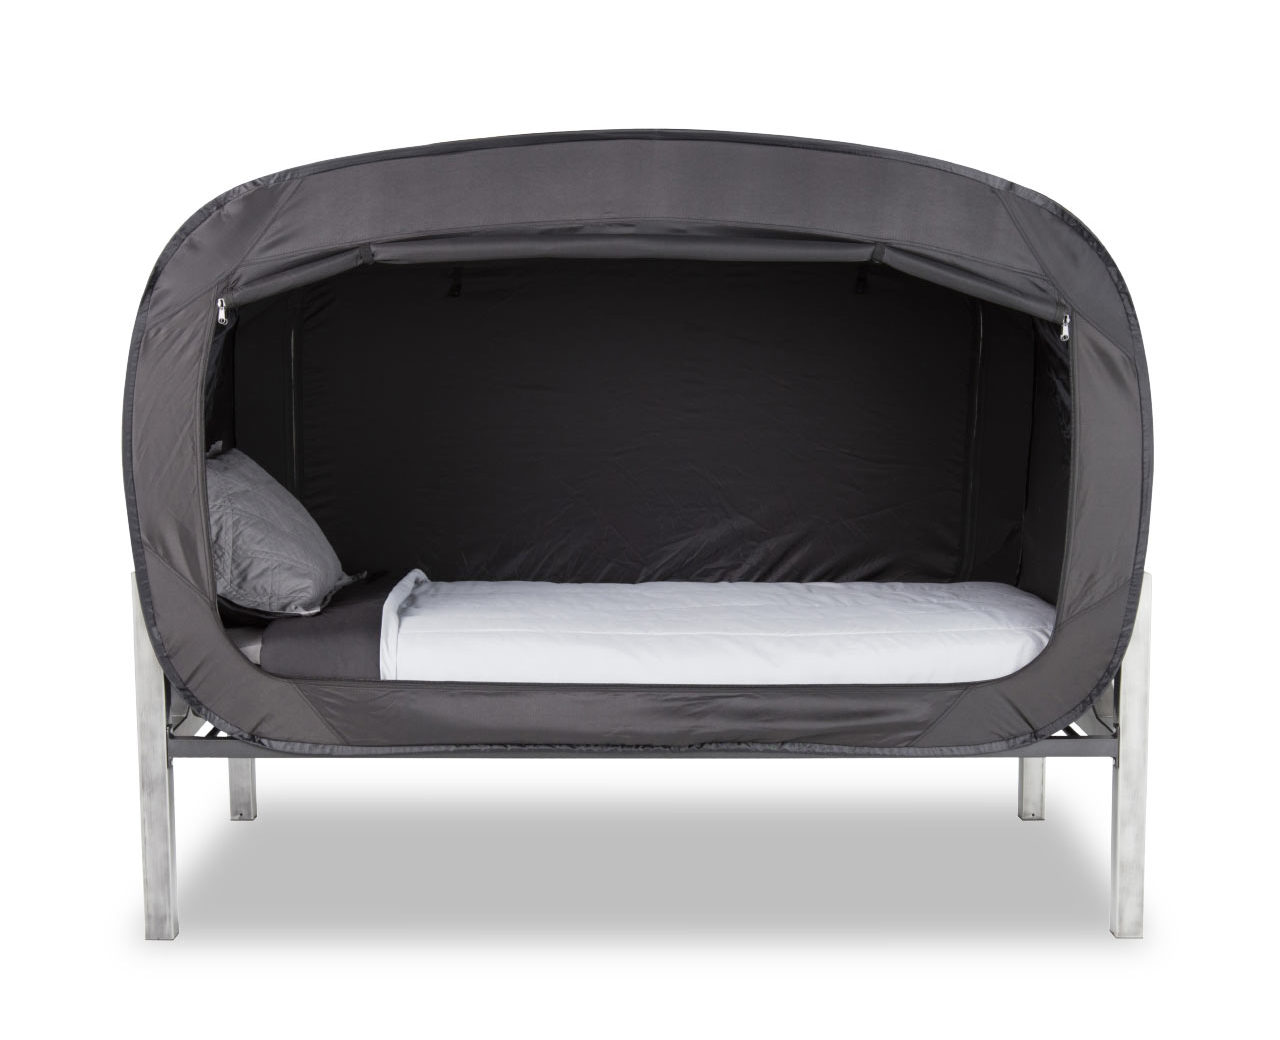 The Bed Tent Has Us Dreaming of Nap Time